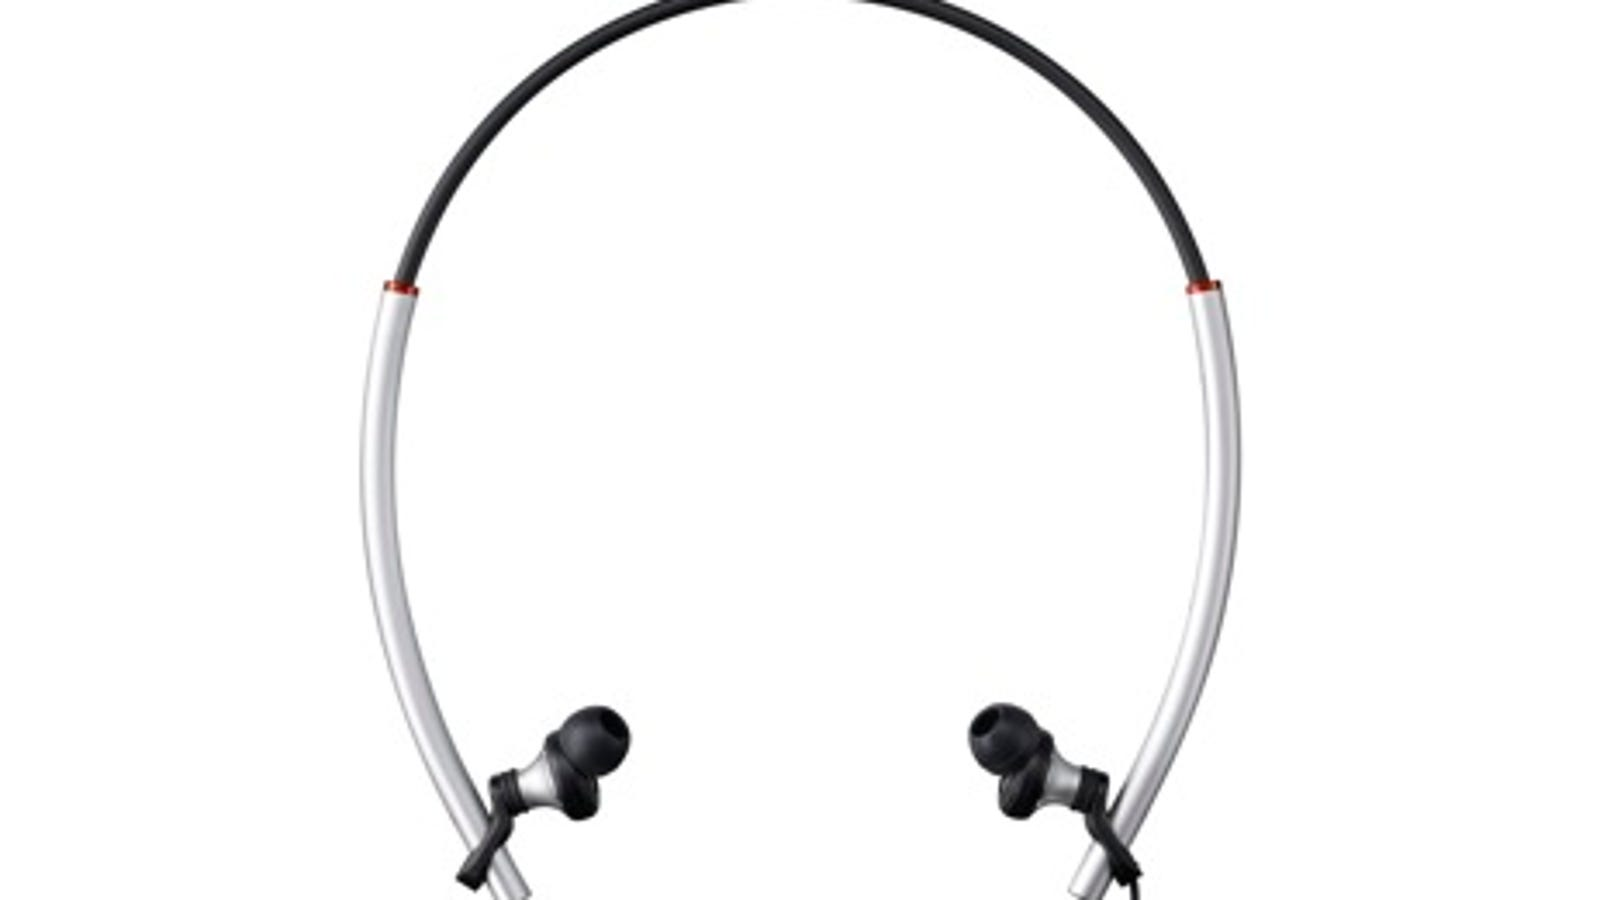 bluetooth headphones wireless headband